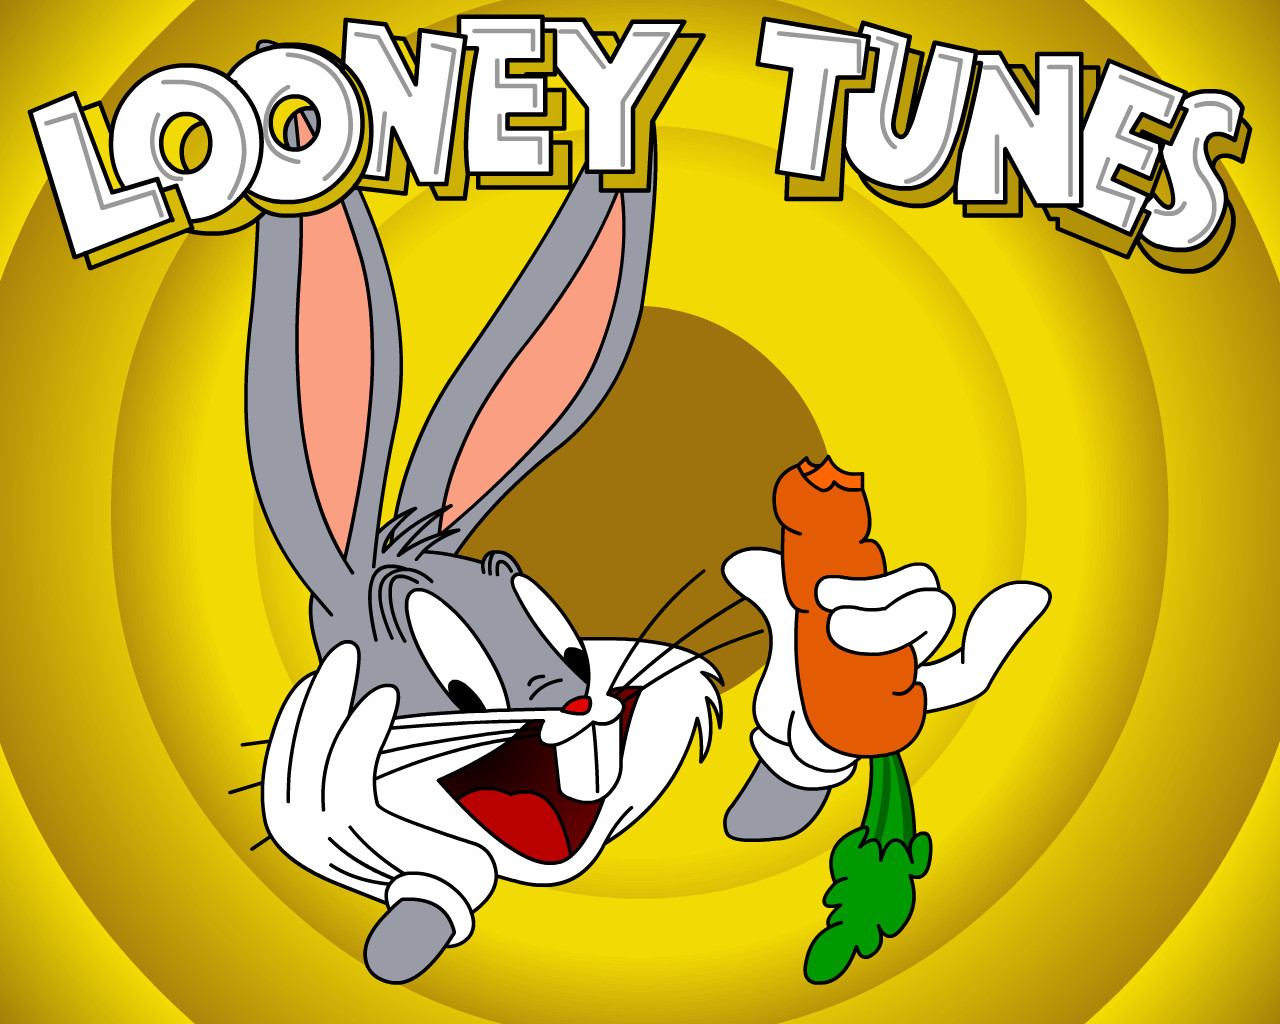 Looney Tunes Bugs Bunny Character Wallpaper